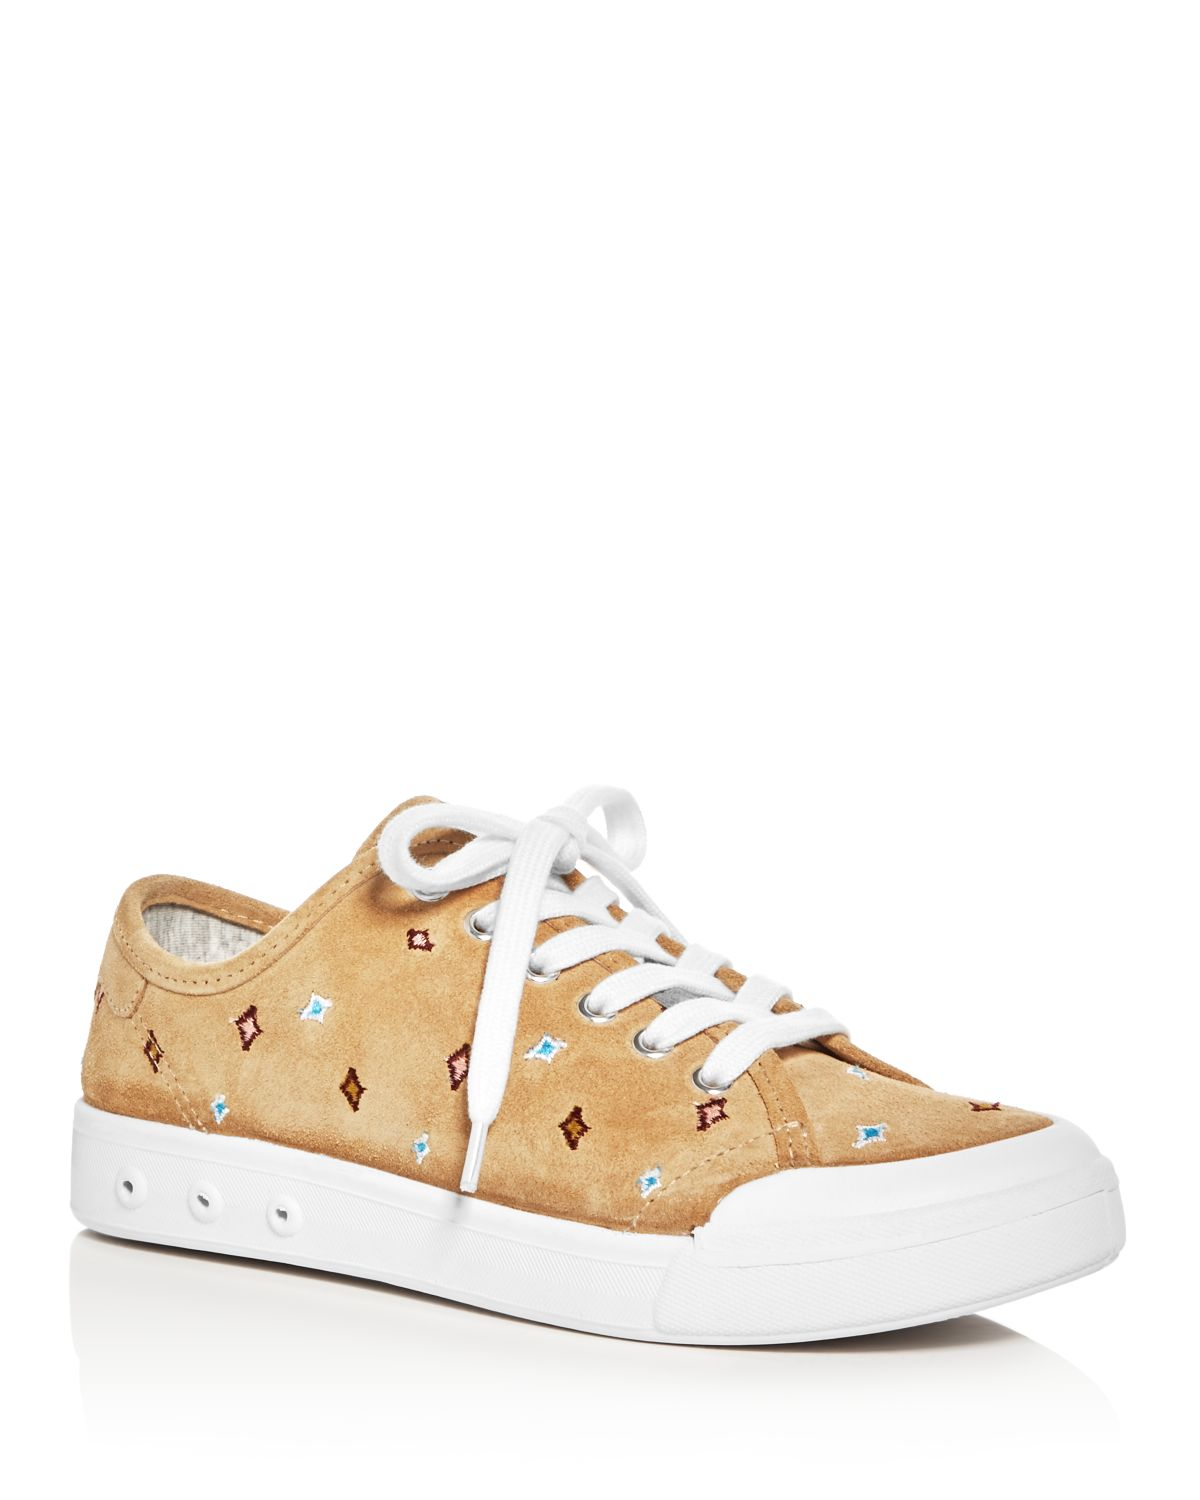 RAG&BONE Women's Standard Issue Suede Embroidered Lace Up Sneakers